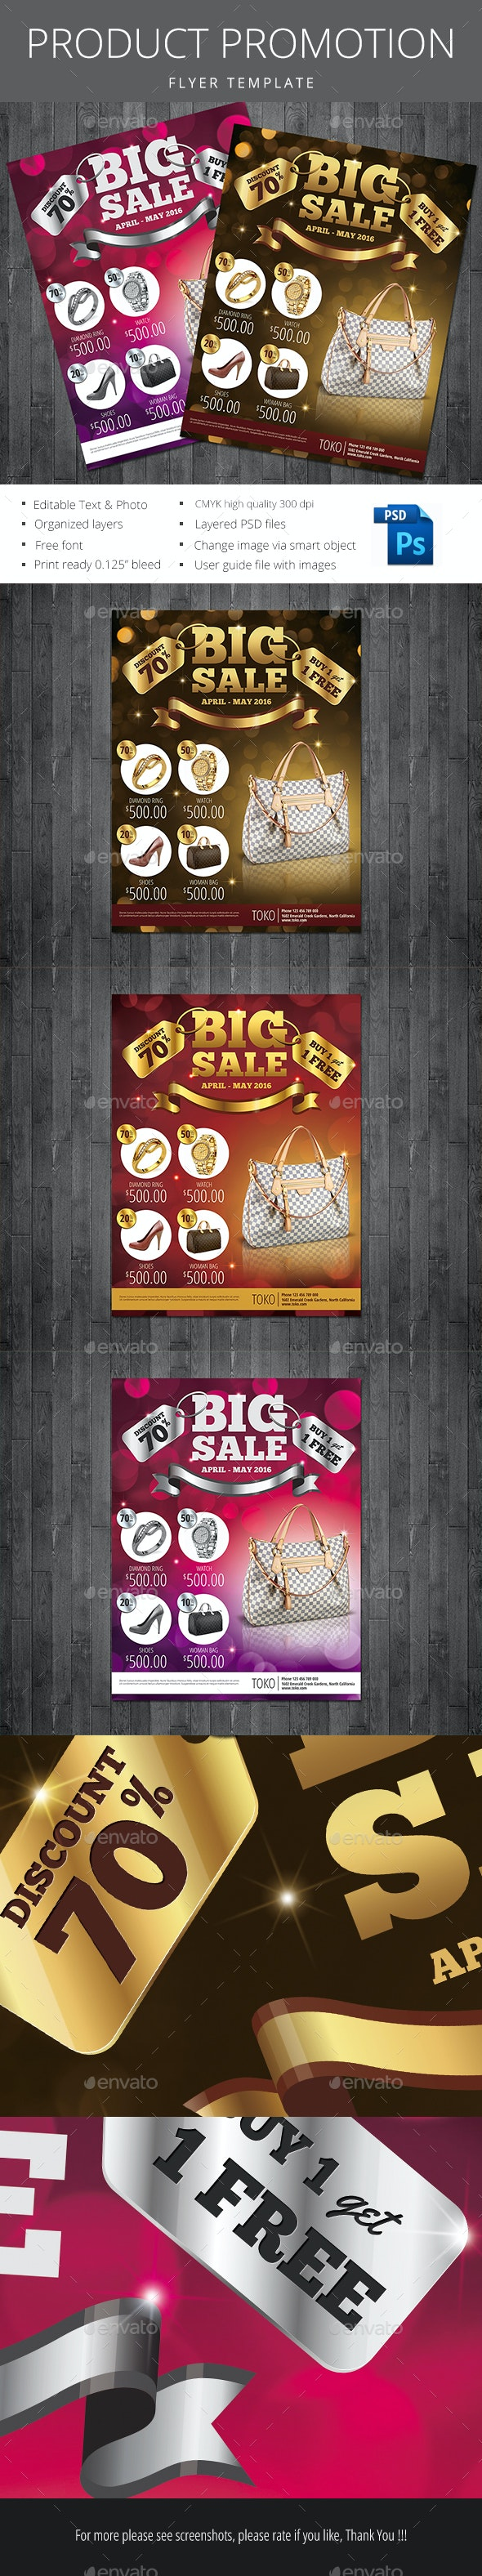 Product Promotion Flyer - Flyers Print Templates